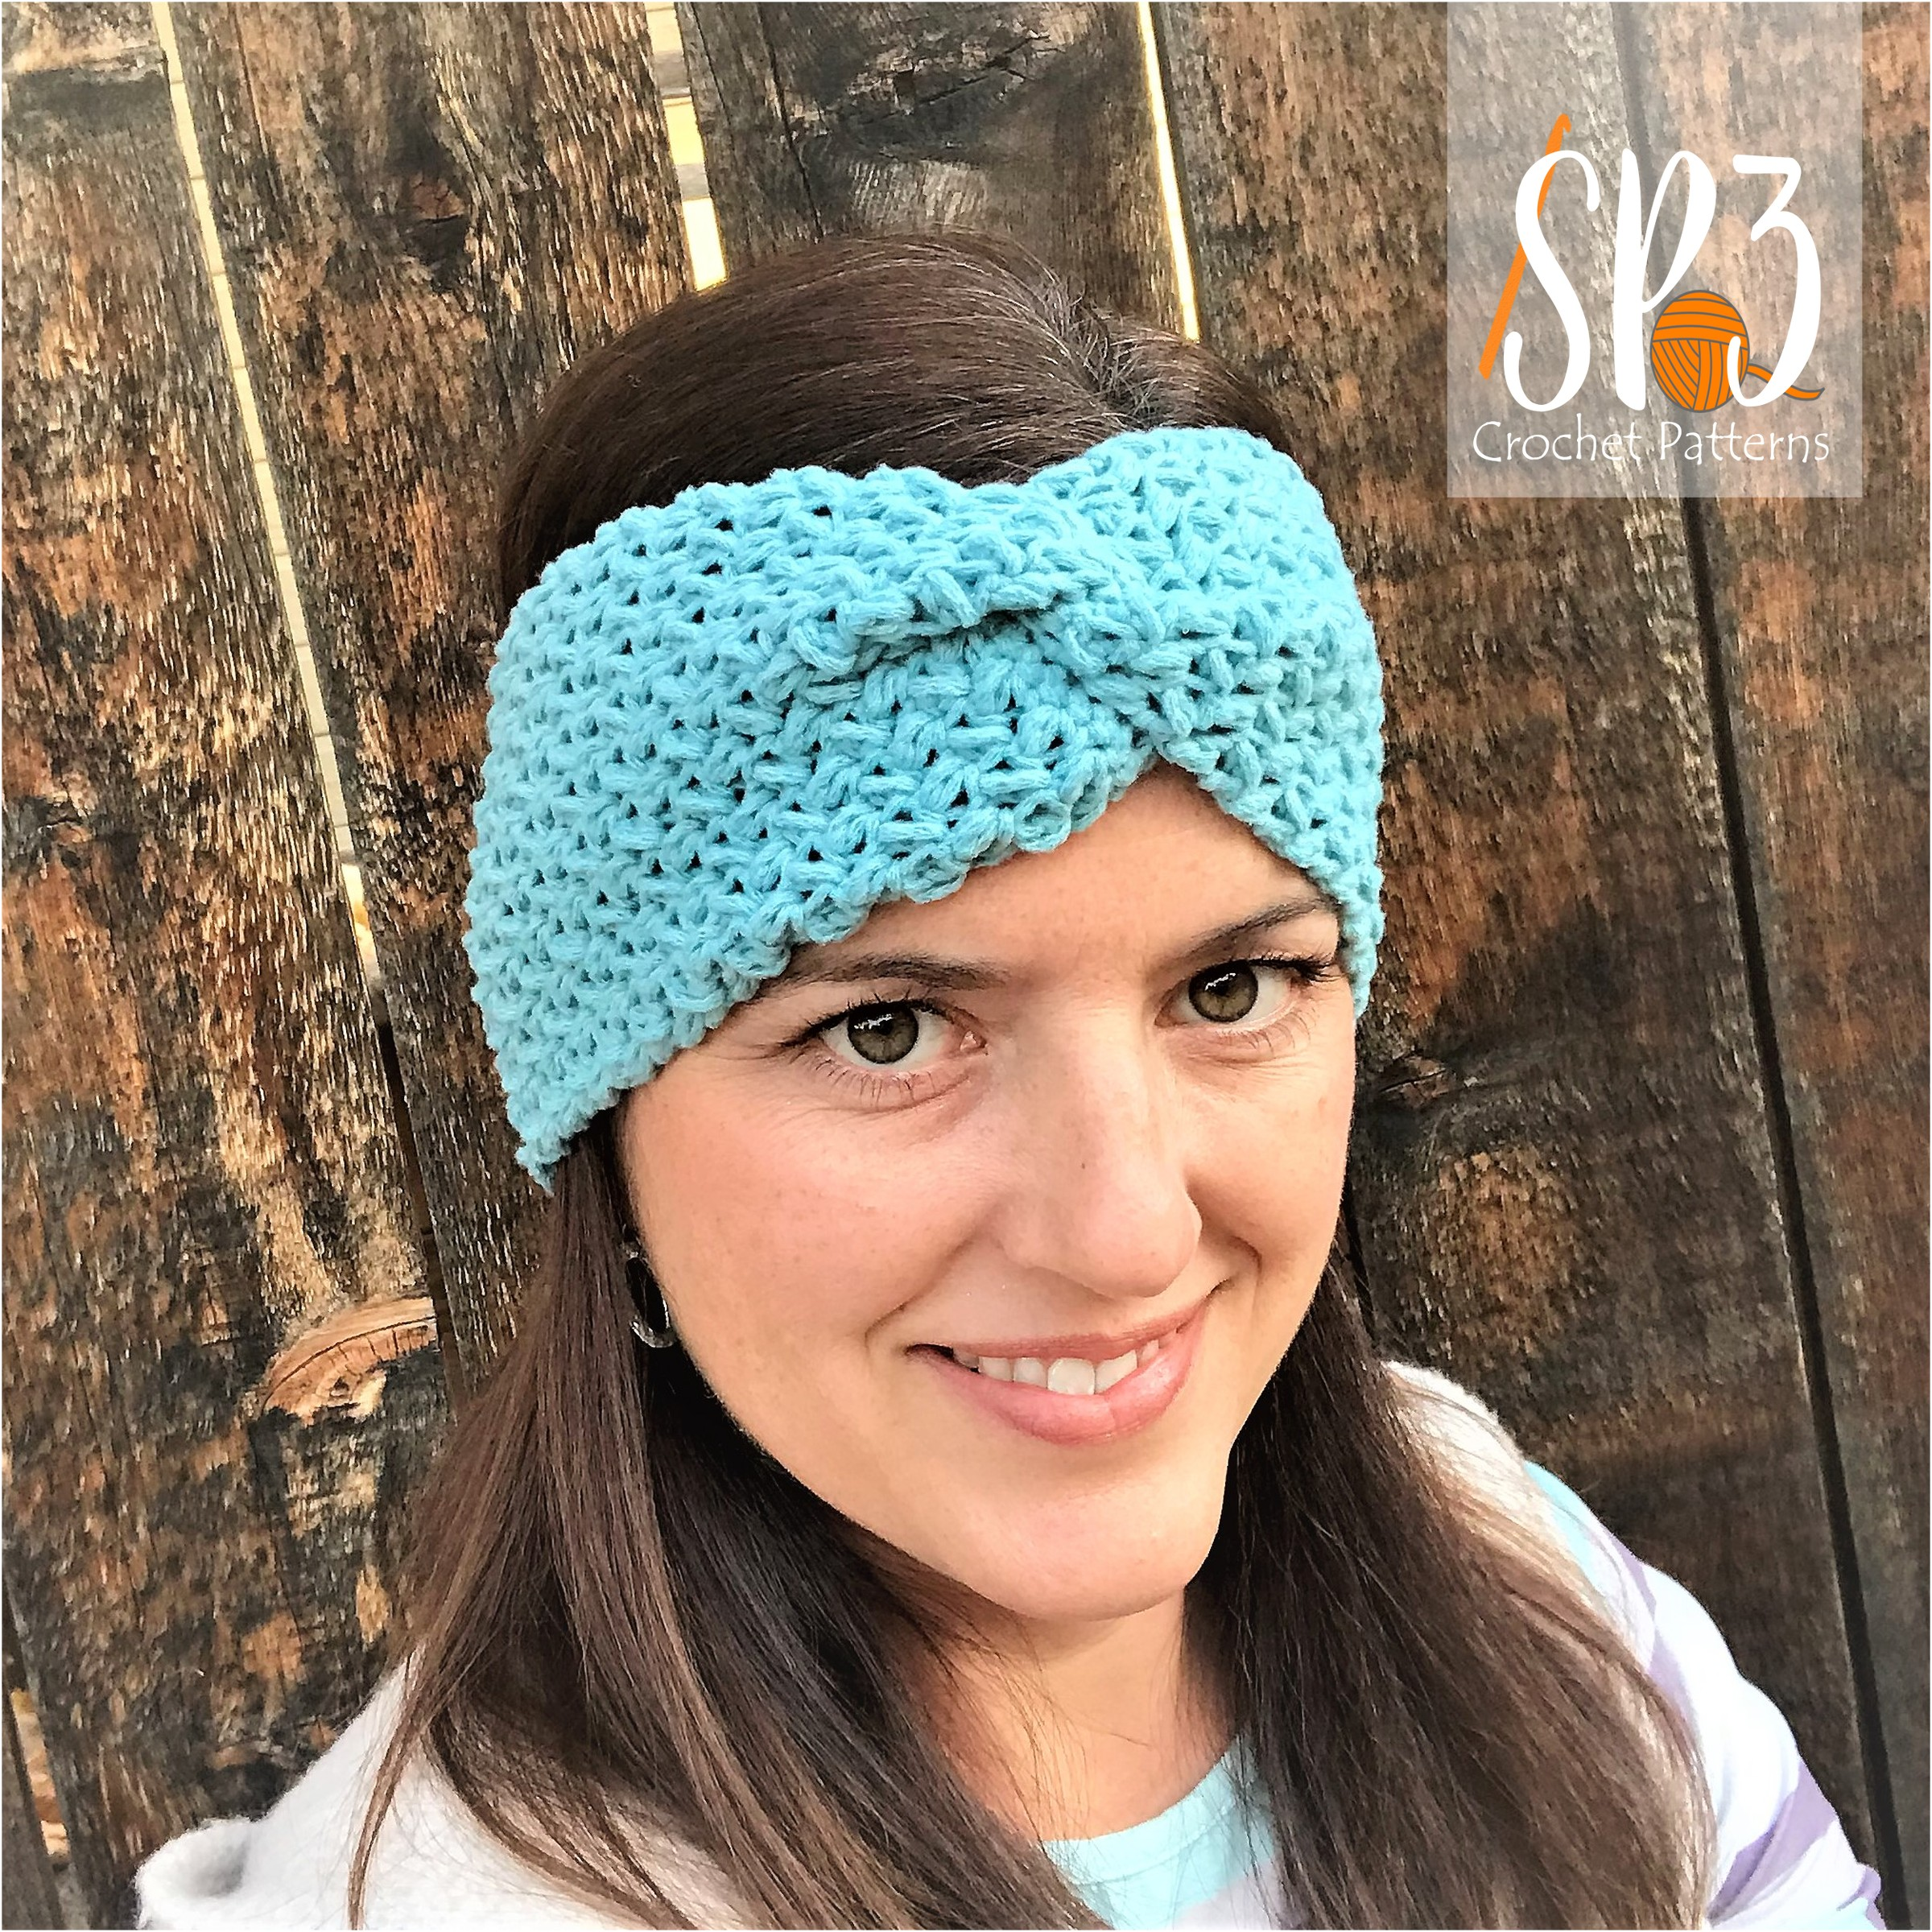 You are currently viewing Mini Bean Stitch and Ear Warmer Instructions